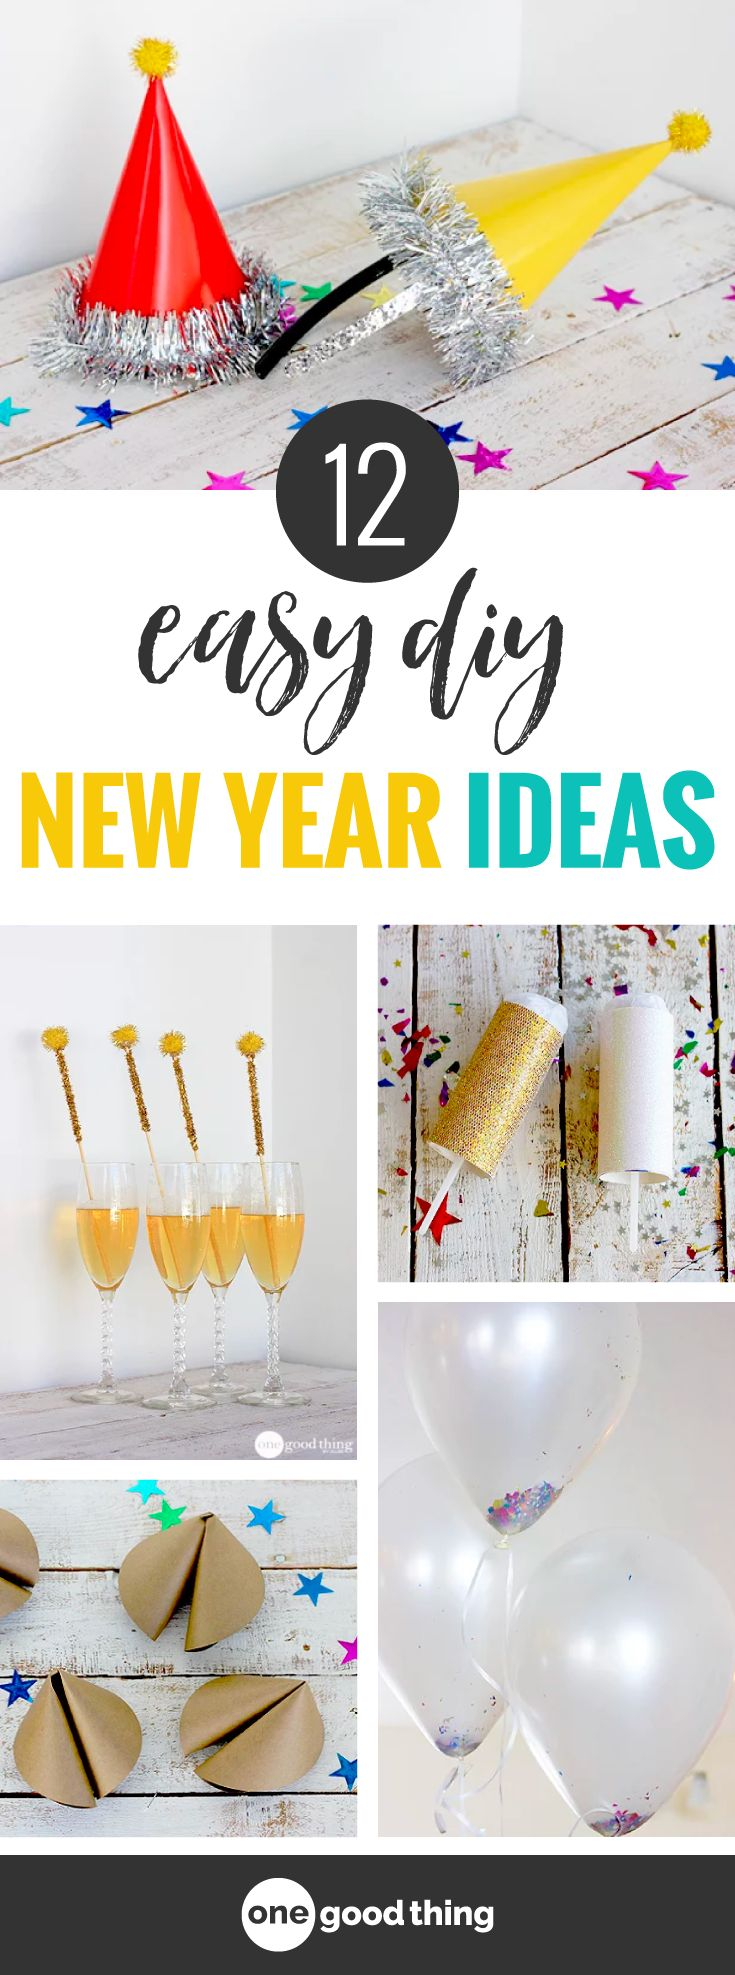 43 best New Year images on Pinterest | New years eve, Alabama and ...